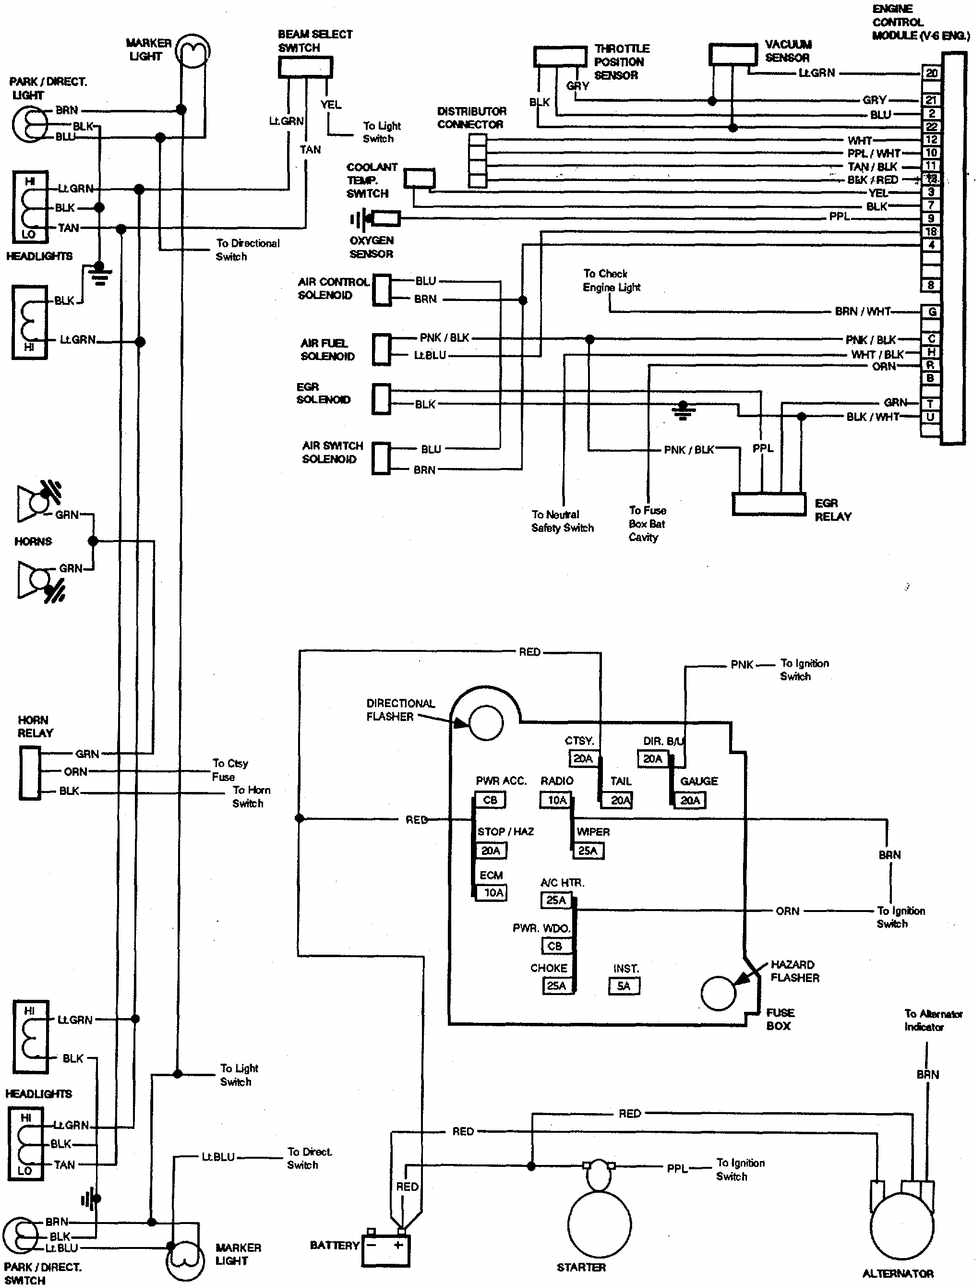 631764 Vacuum Lines Diagrams I in addition Drawings exploded views together with Chevrolet V8 Trucks 1981 1987 as well Chevrolet Silverado Motor Diagram Egr Location as well Engine Starting System. on 1985 corvette throttle body diagram